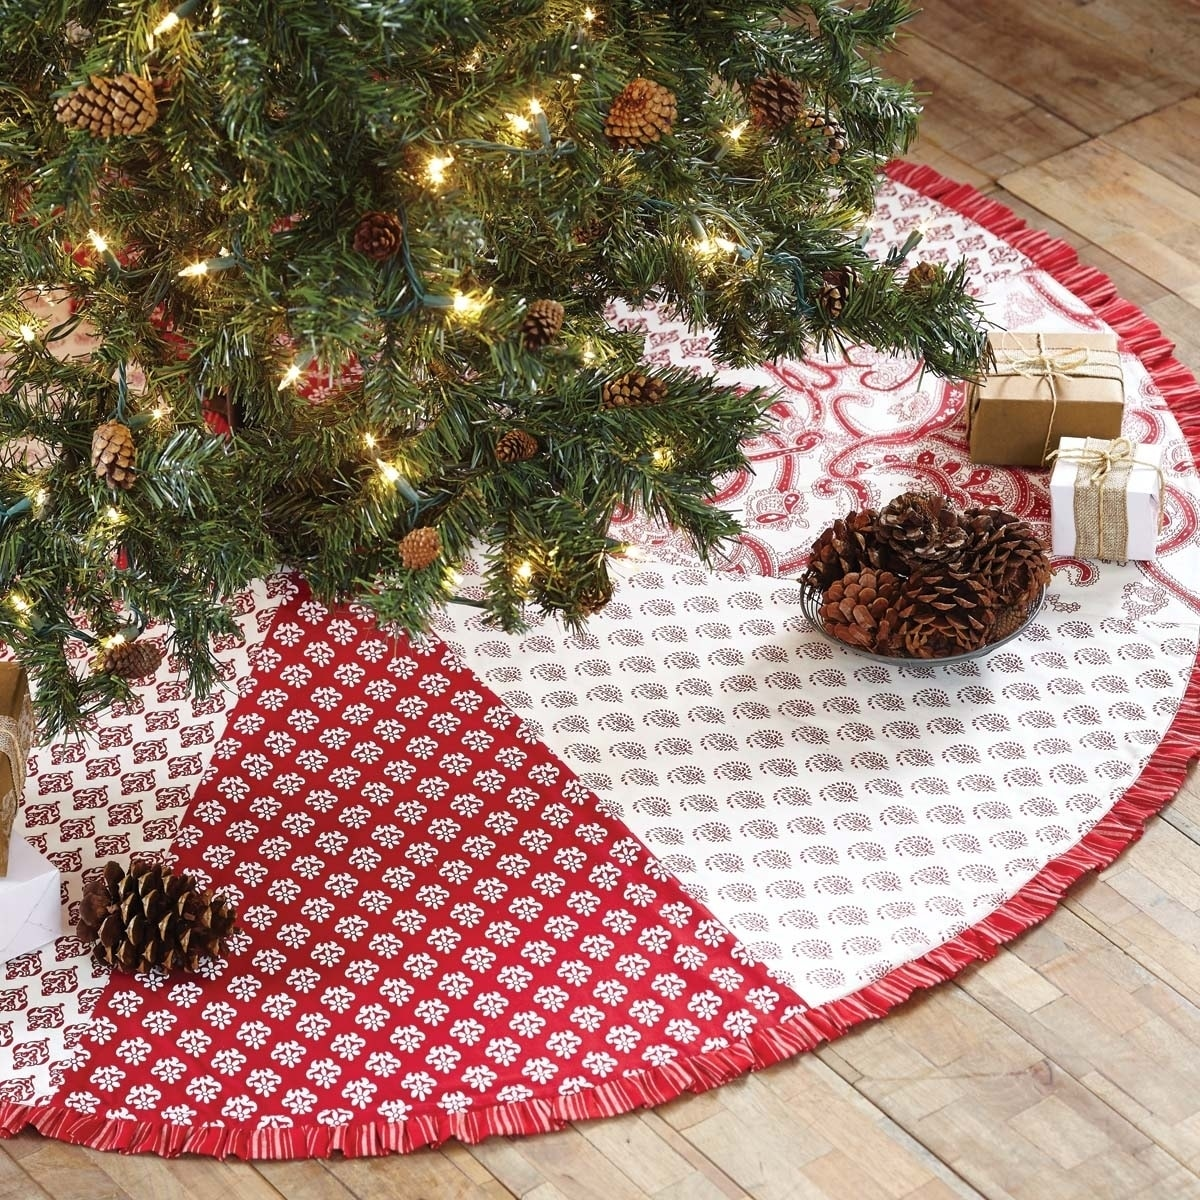 "Christmas Holiday Decor Whitton Red Tree Skirt 50/"" Burlap VHC Brands"